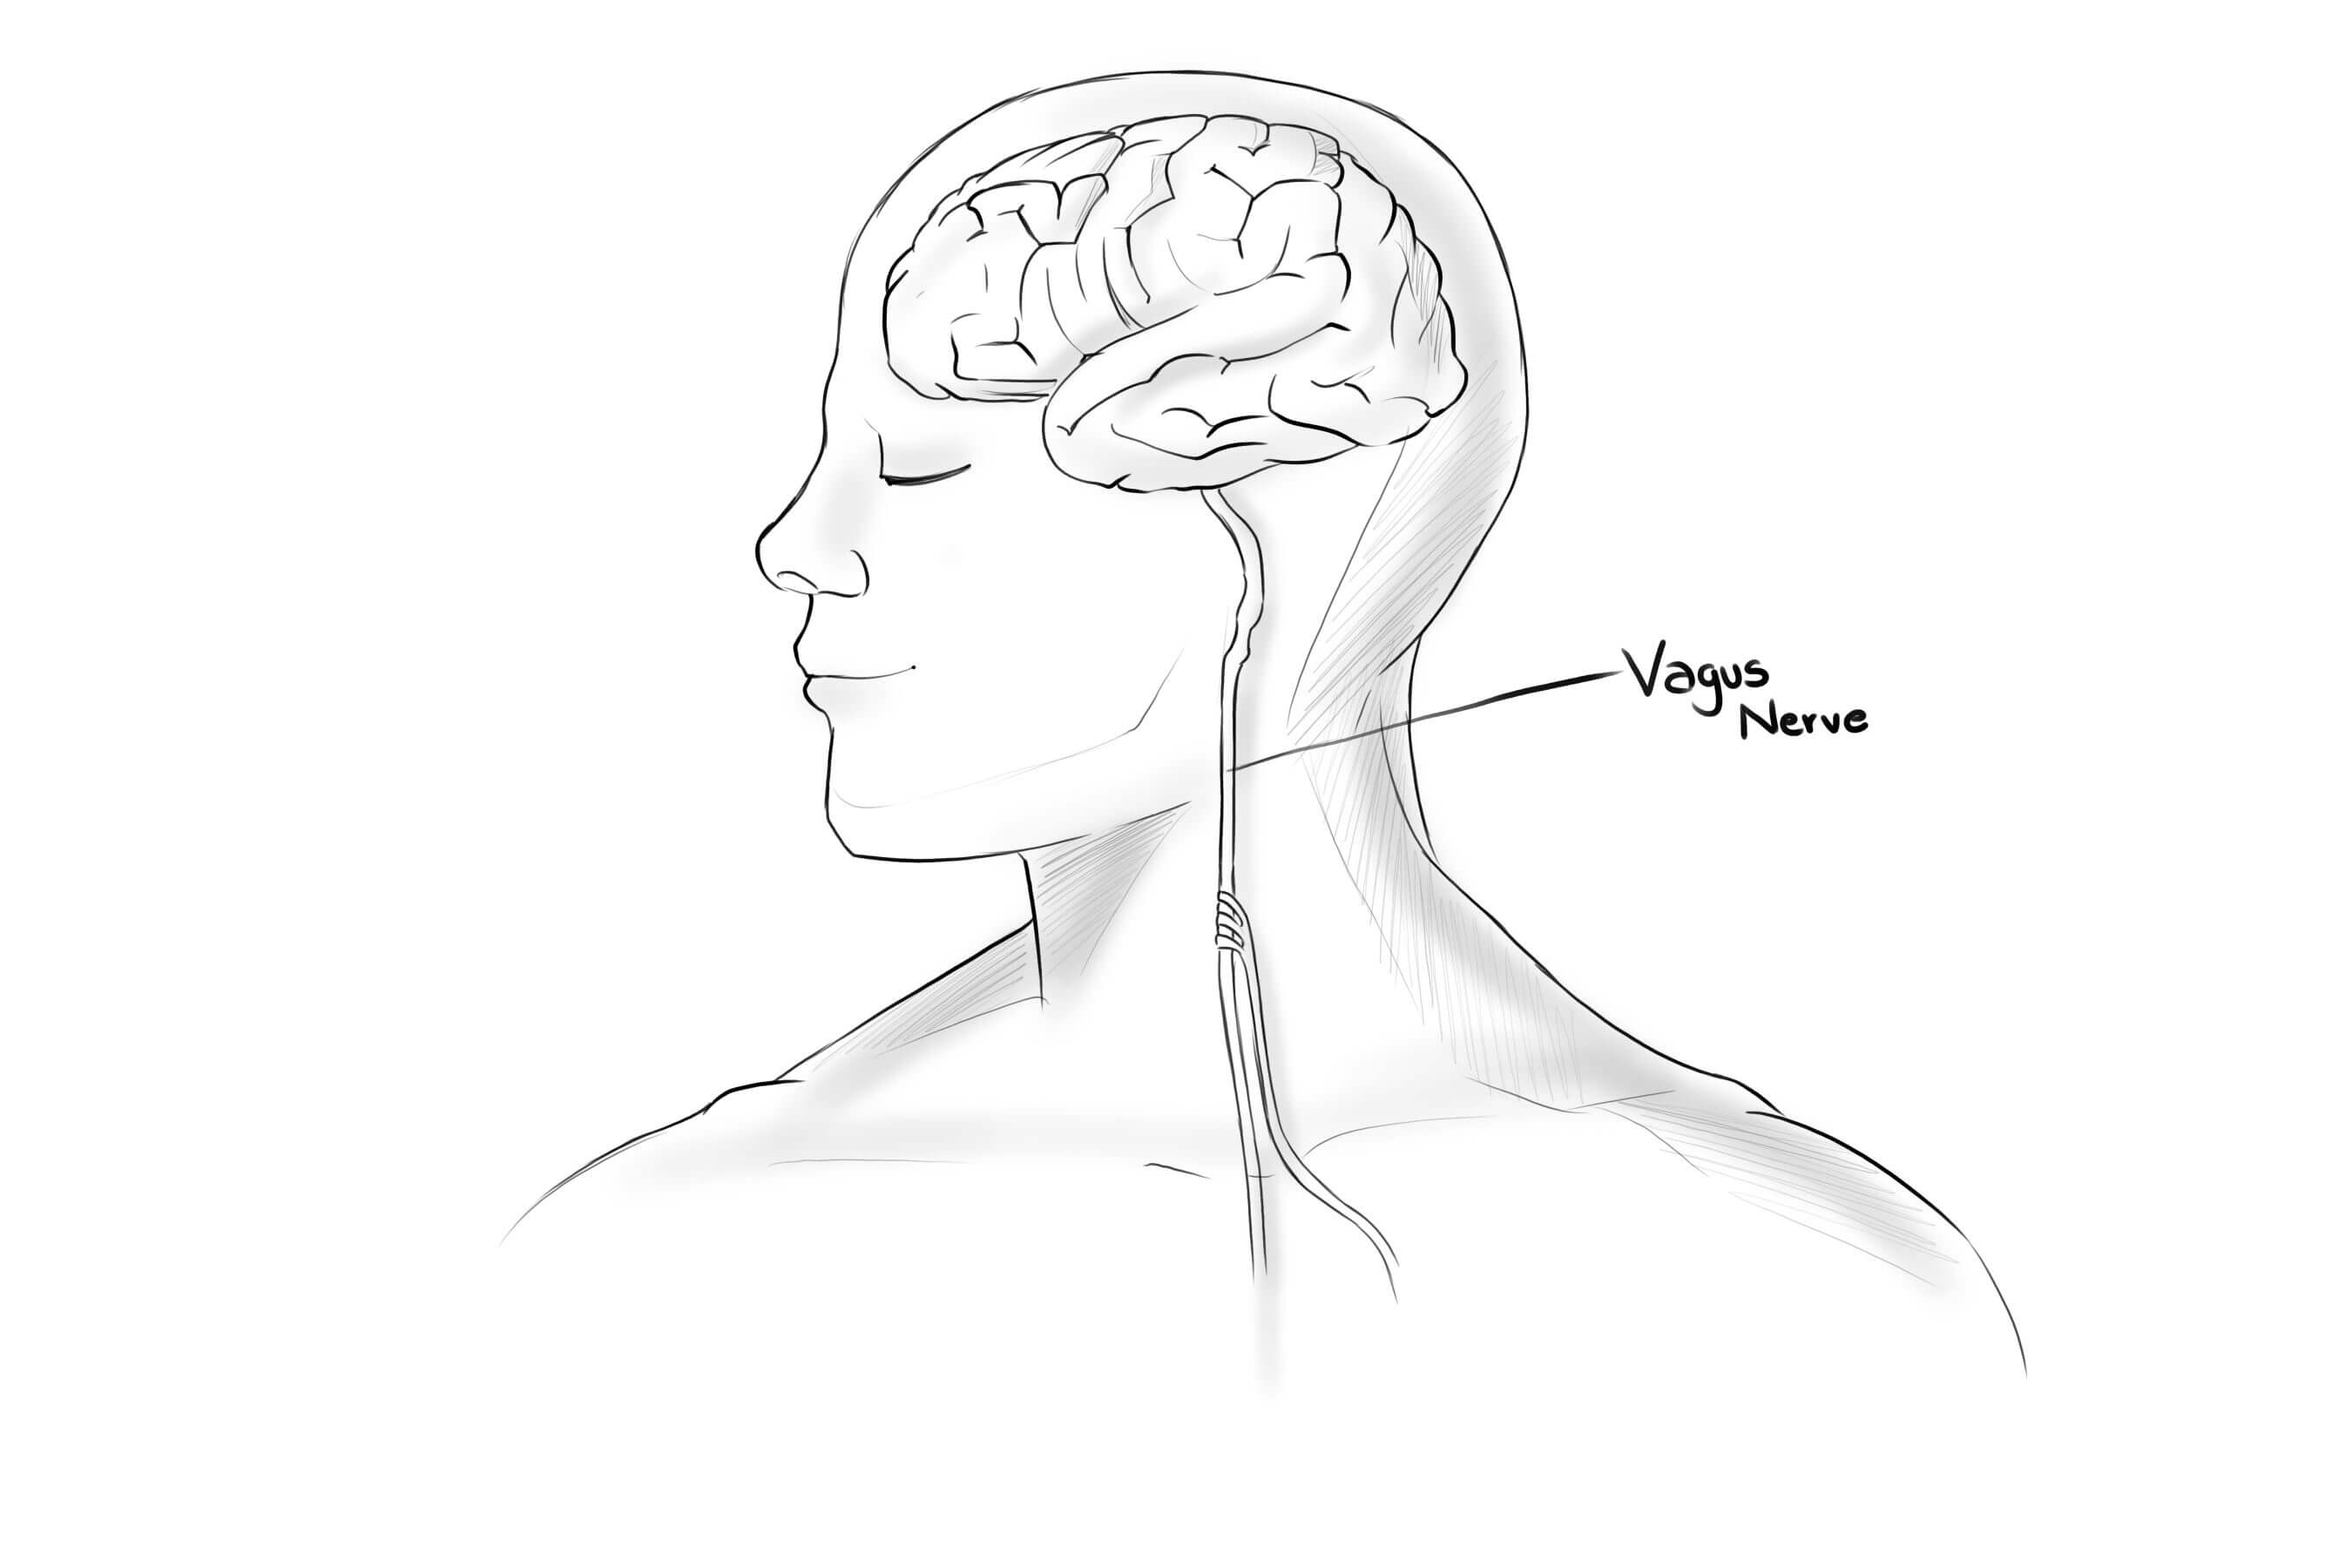 DIAGRAM OF VAGUS NERVE